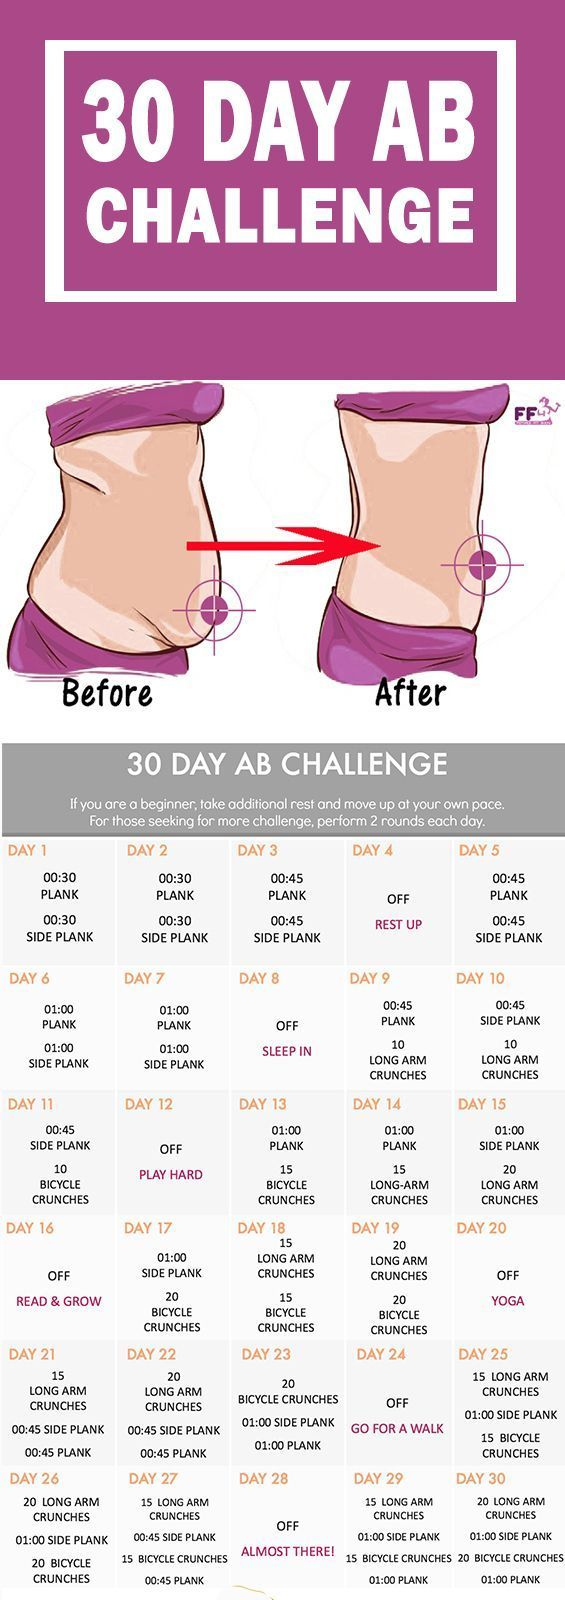 30 Day Ab Challenge – Best Ab Exercises to Lose Belly Fat Fast. The Best Workout Tips Of All Time To Help You Supercharge Your Diet, To Get The Weightloss and Health Fitness Goals You've Set. Work Out